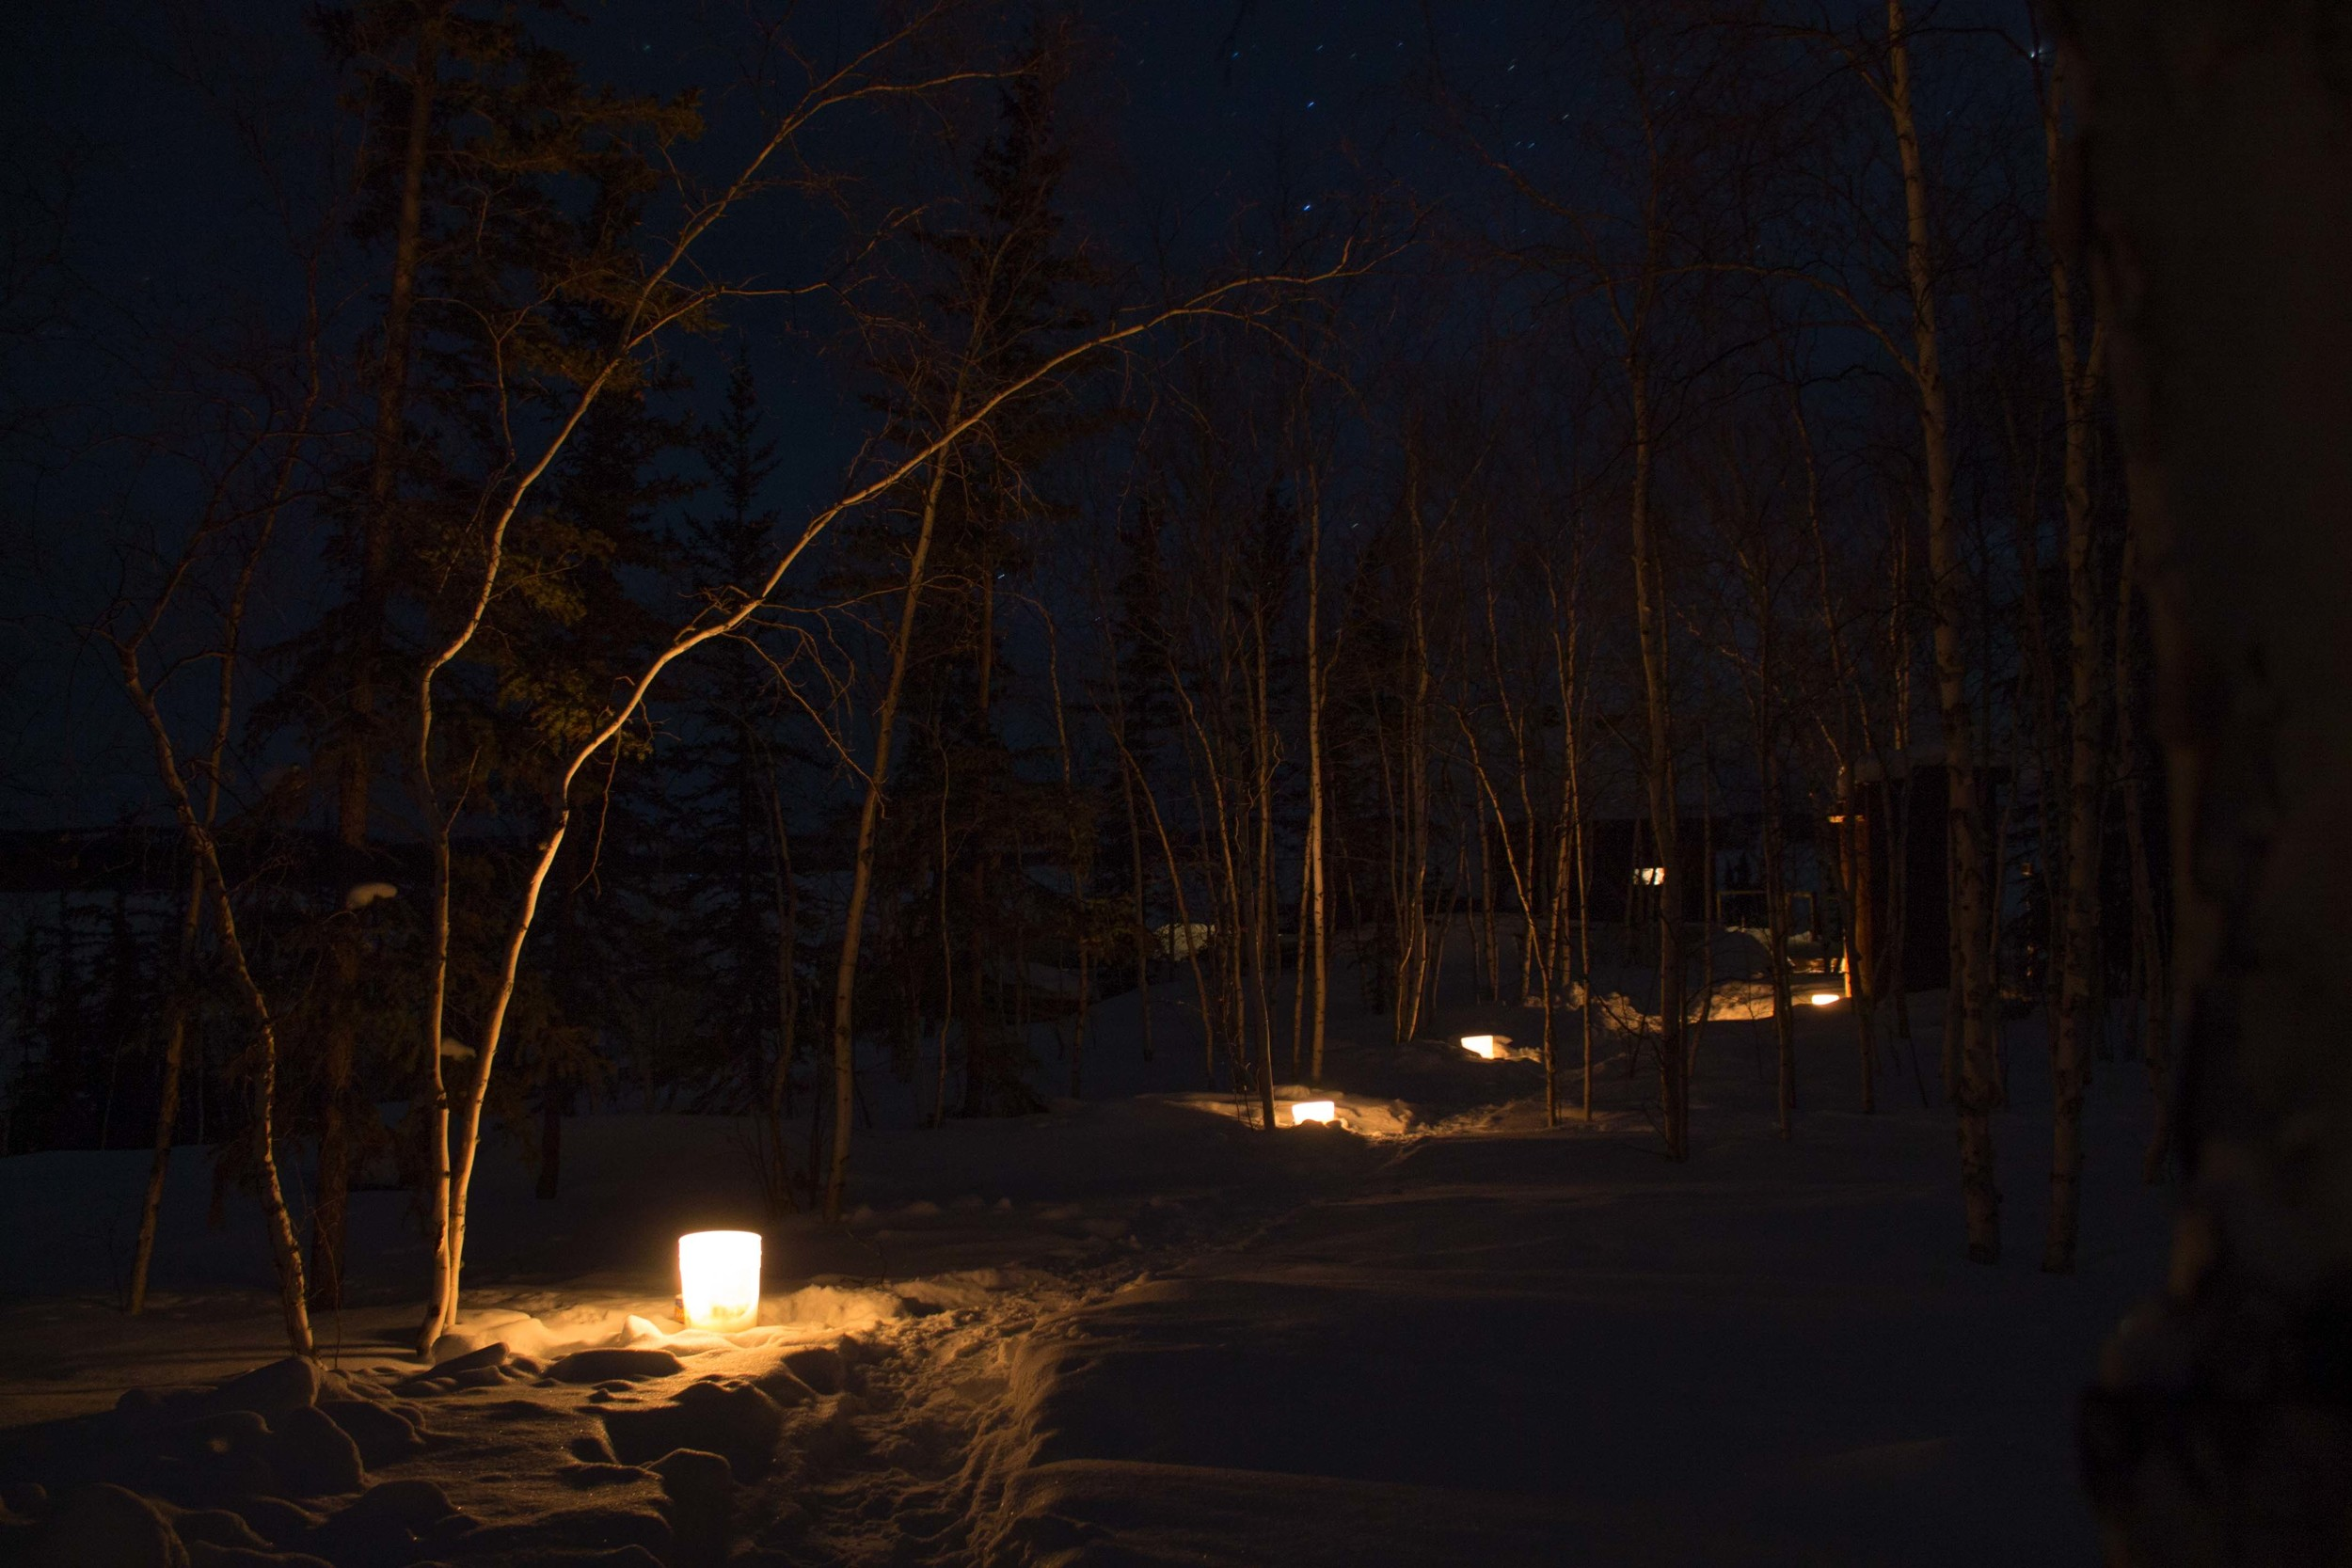 Lanterns lighting the way to the cabin. Photo by Sara Statham.